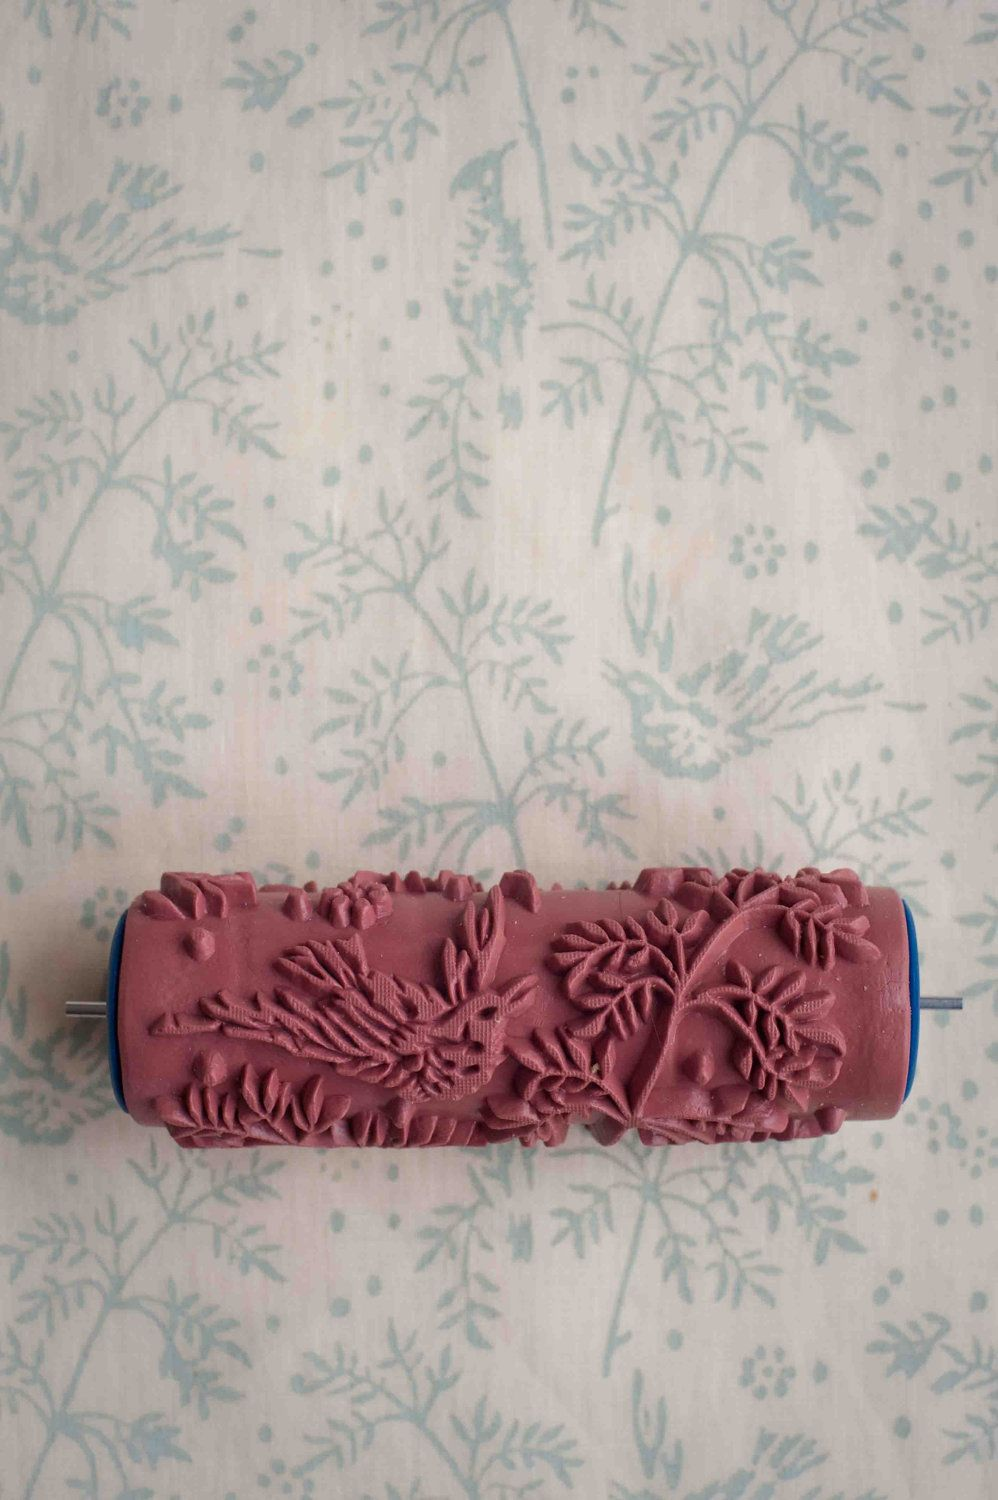 No 1 Patterned Paint Roller From The Painted House Patterned Paint Rollers Paint Rollers With Designs Paint Roller